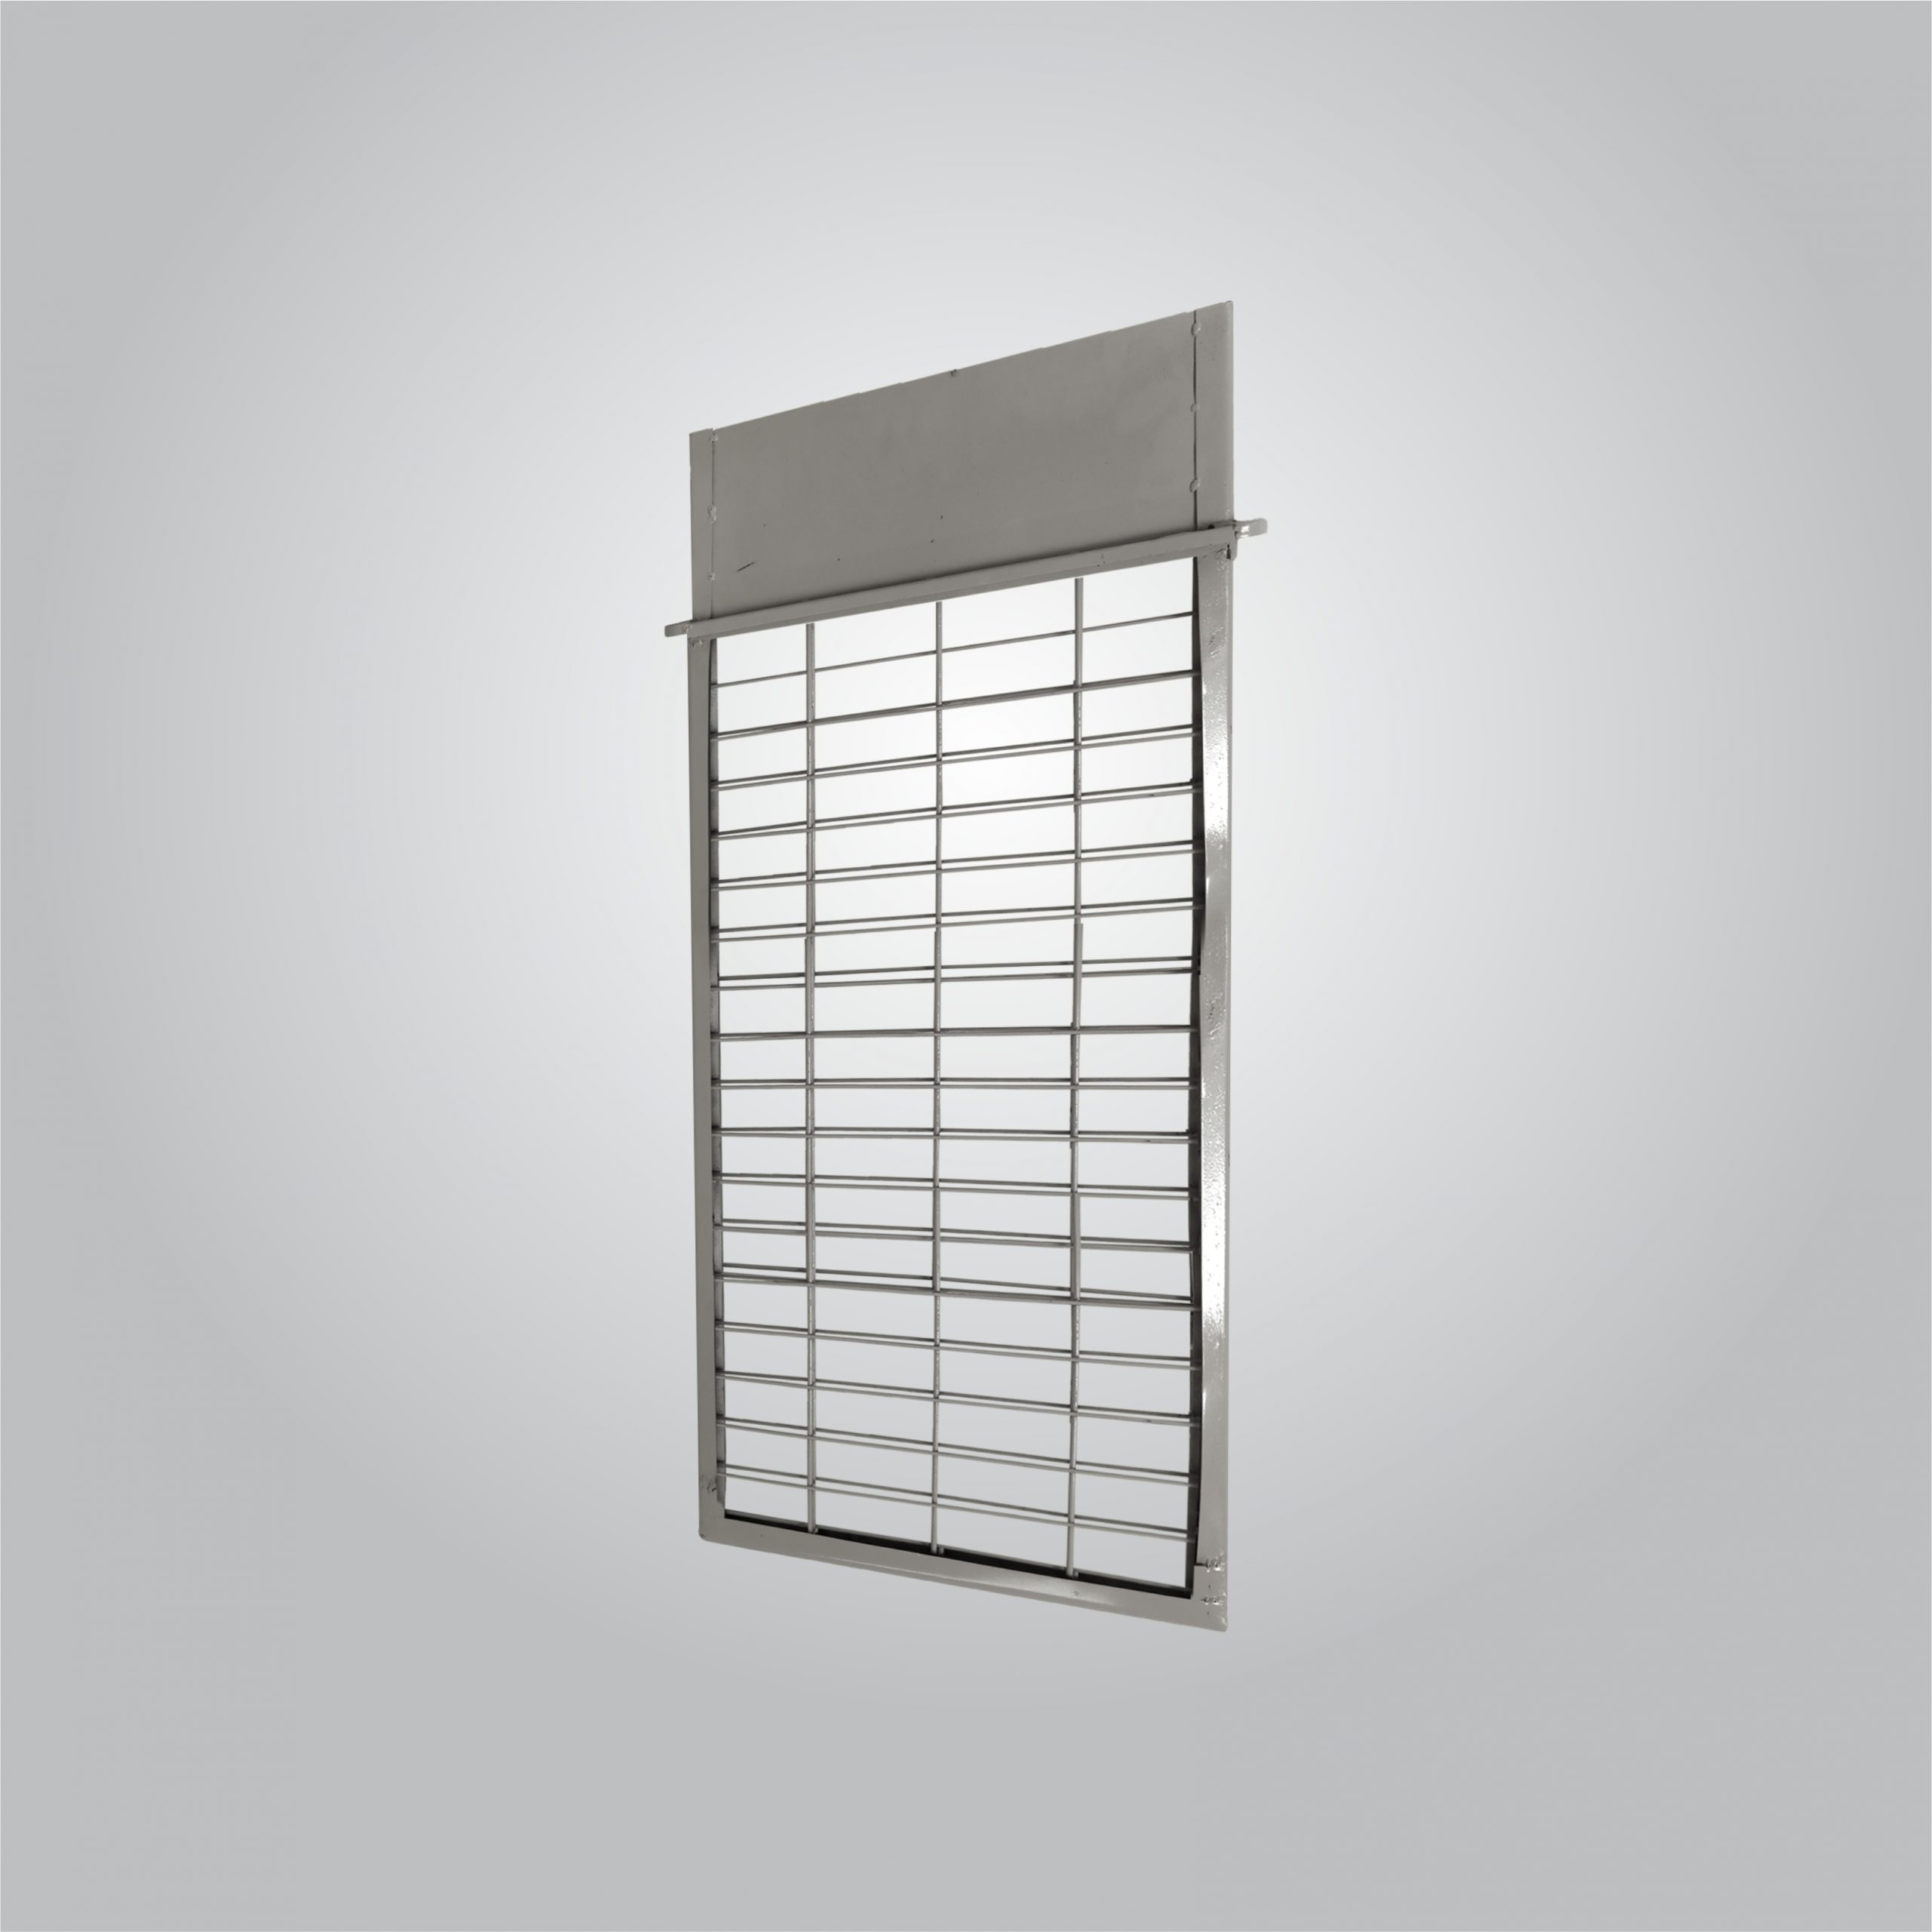 FILTER CAGES, Leading Industrial Filtration Solution Provider